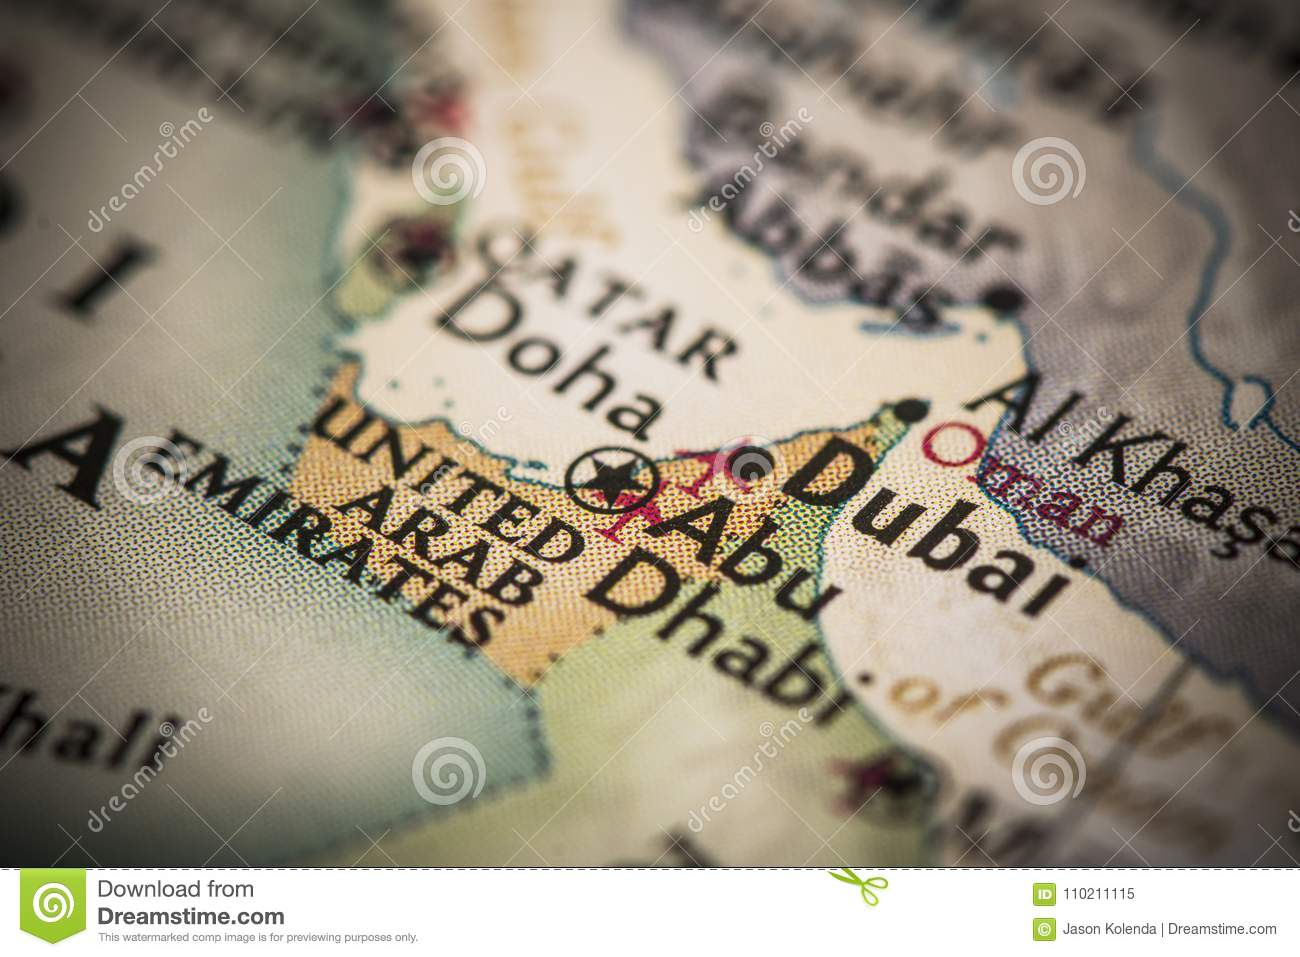 Dubai on map stock image. Image of atlas, geography - 110211115